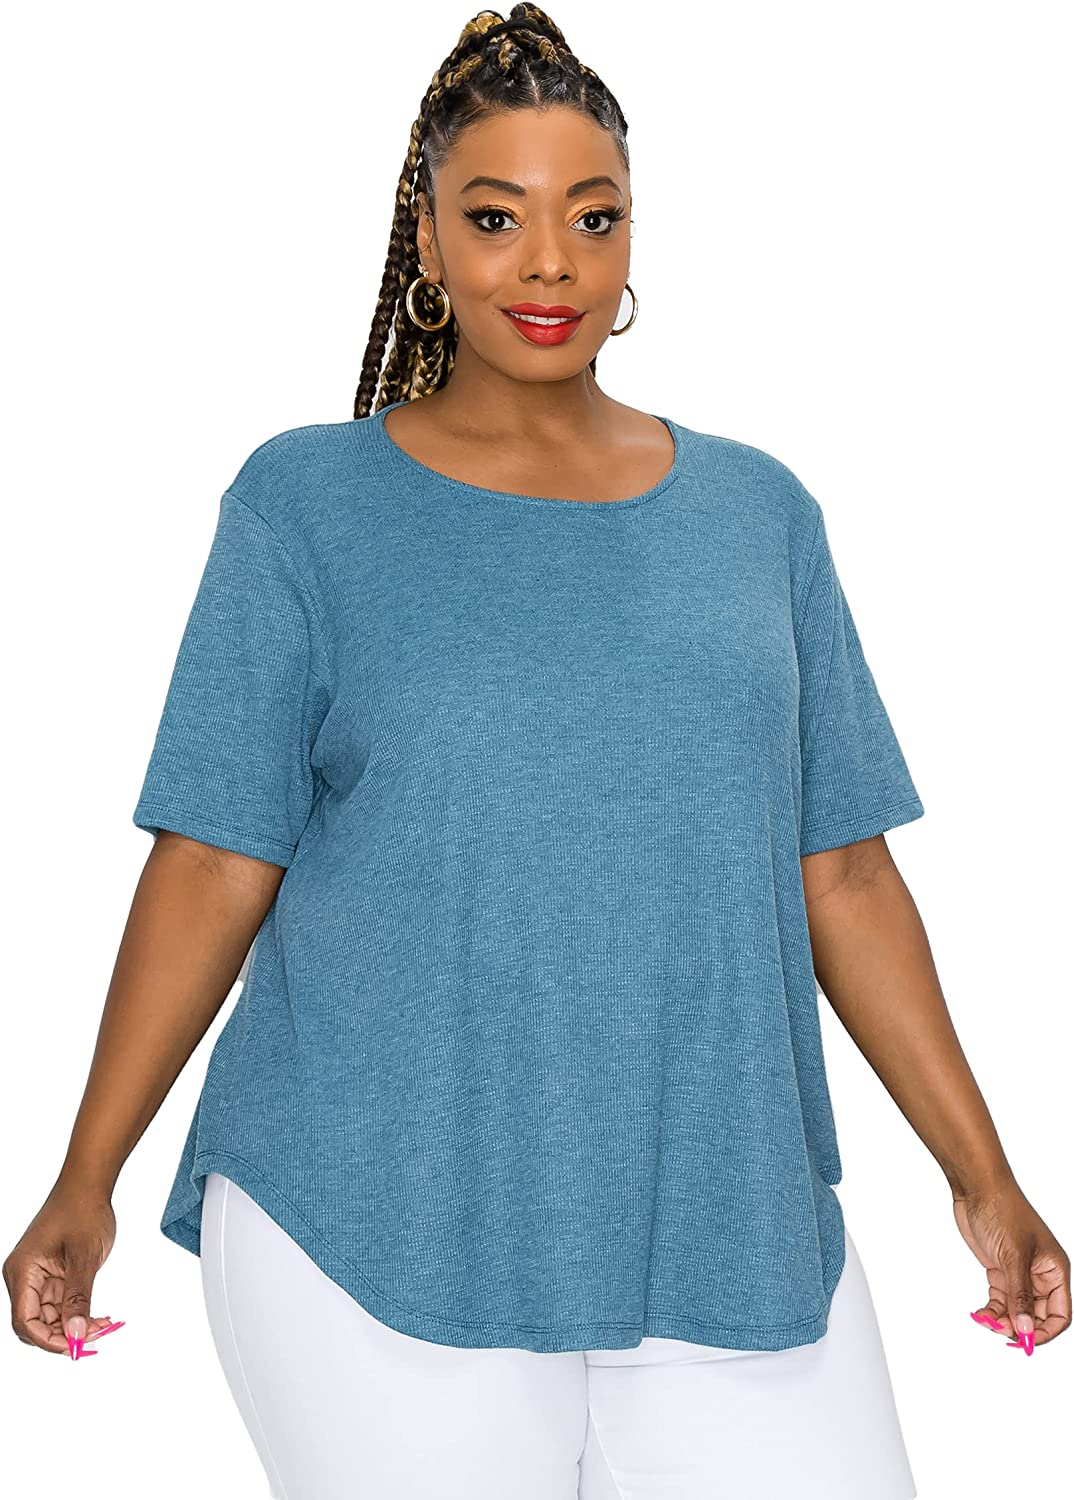 COIN 1804 Women's T Shirt – Plus Size Casual Soft Baby Thermal Short Sleeve Crewneck Swing Flowy Basic Tunic Tee Tshirt Top